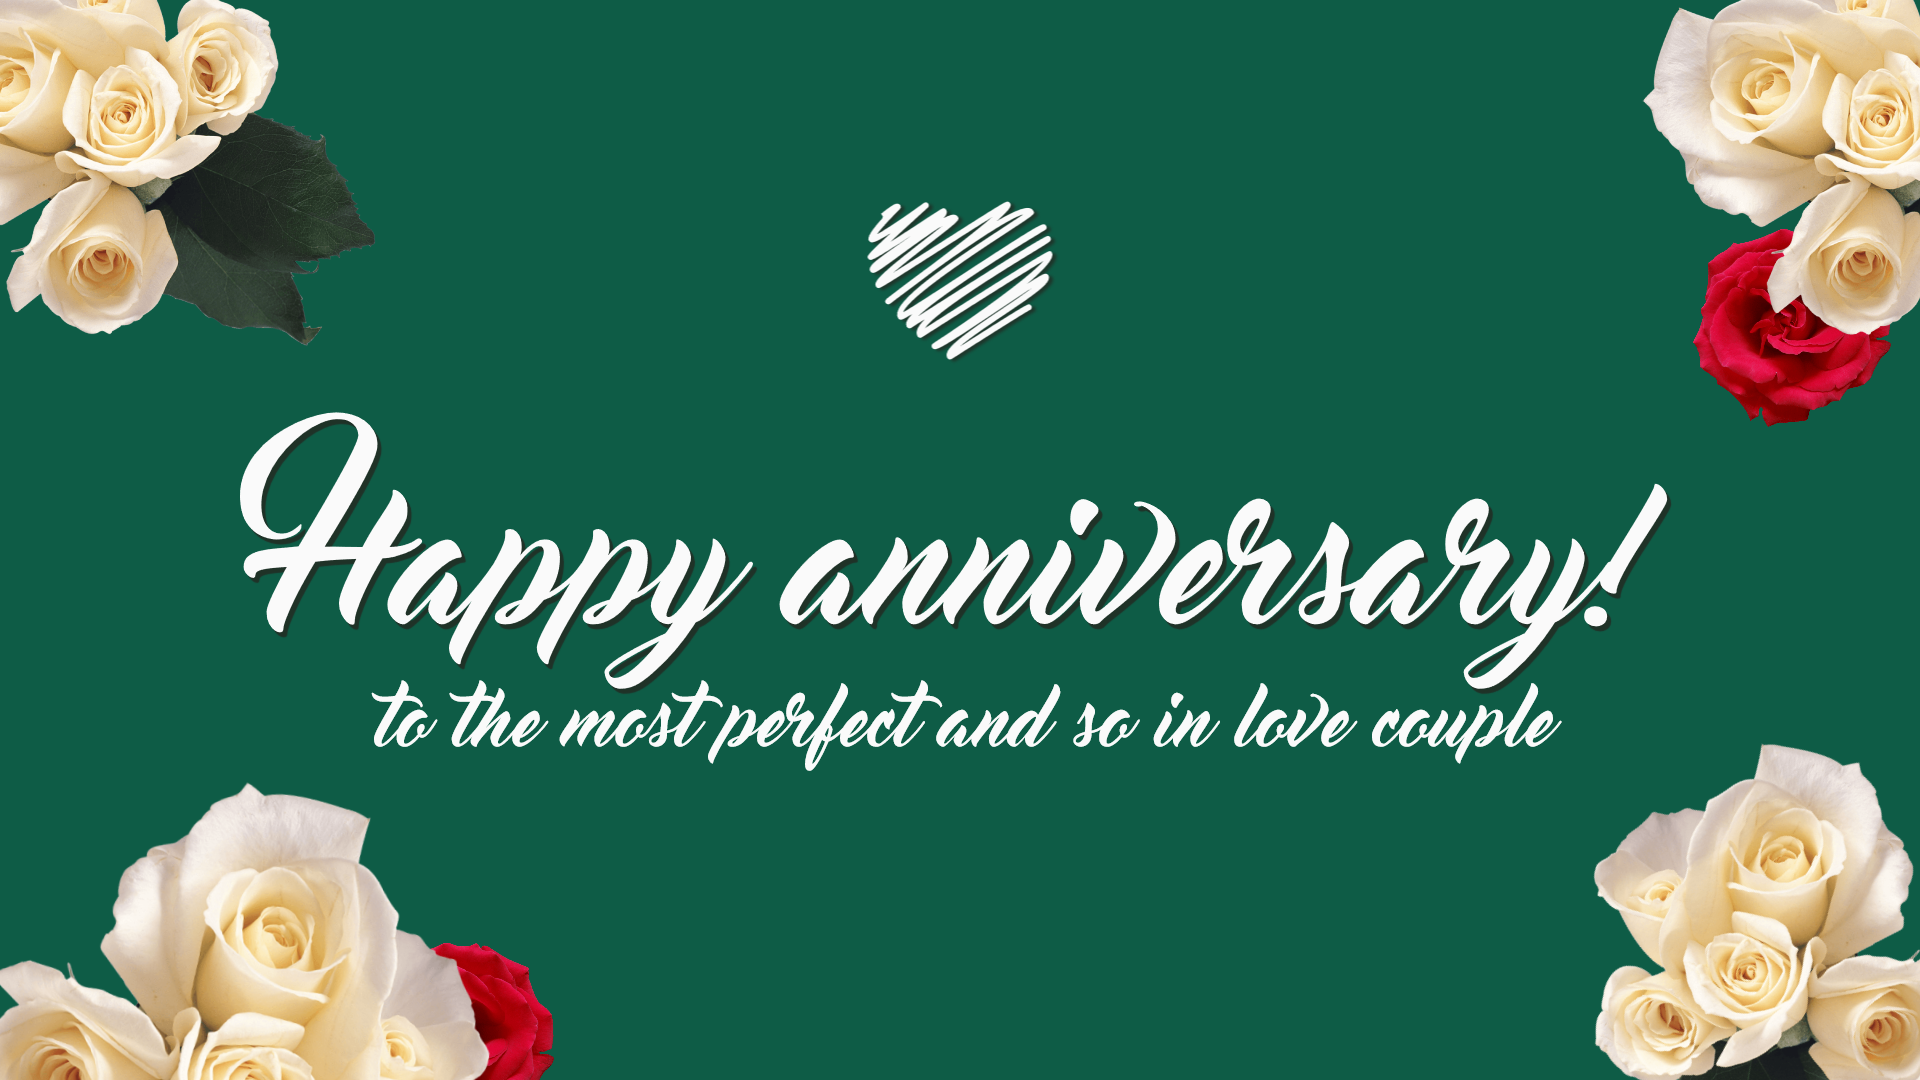 Happy anniversary card template Design  Template